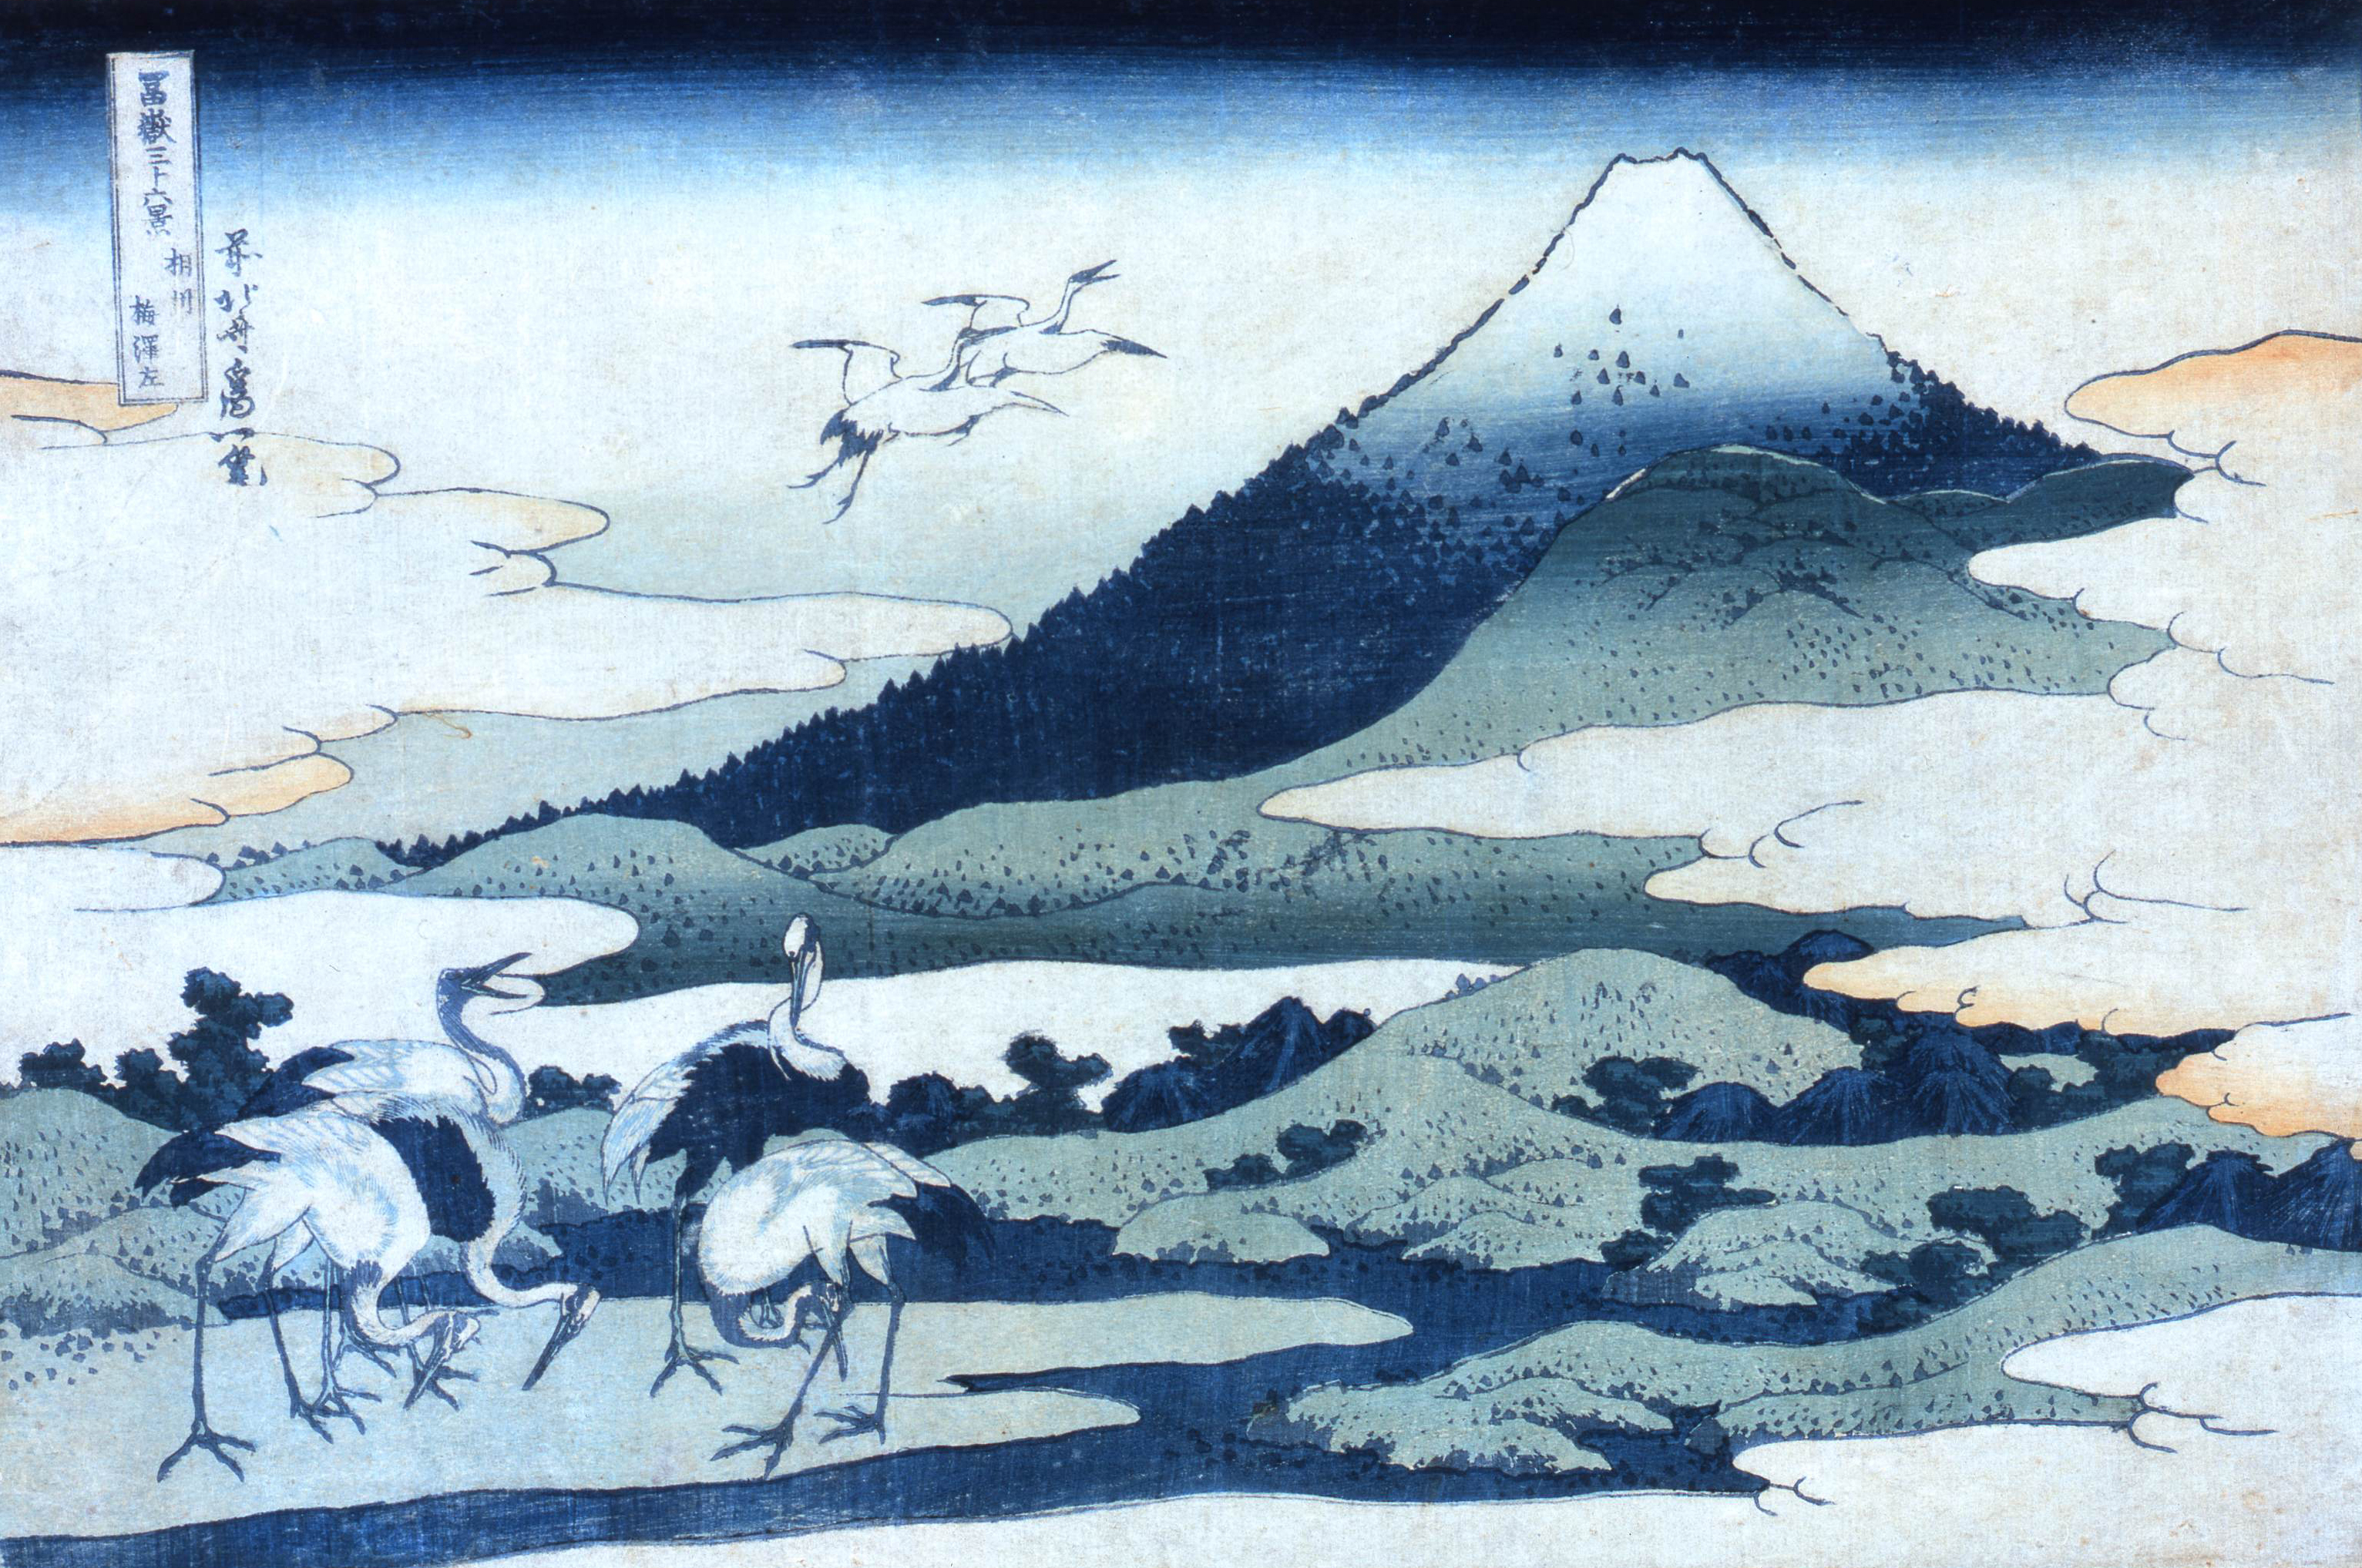 Why 'The Great Wave off Kanagawa' has mystified art lovers